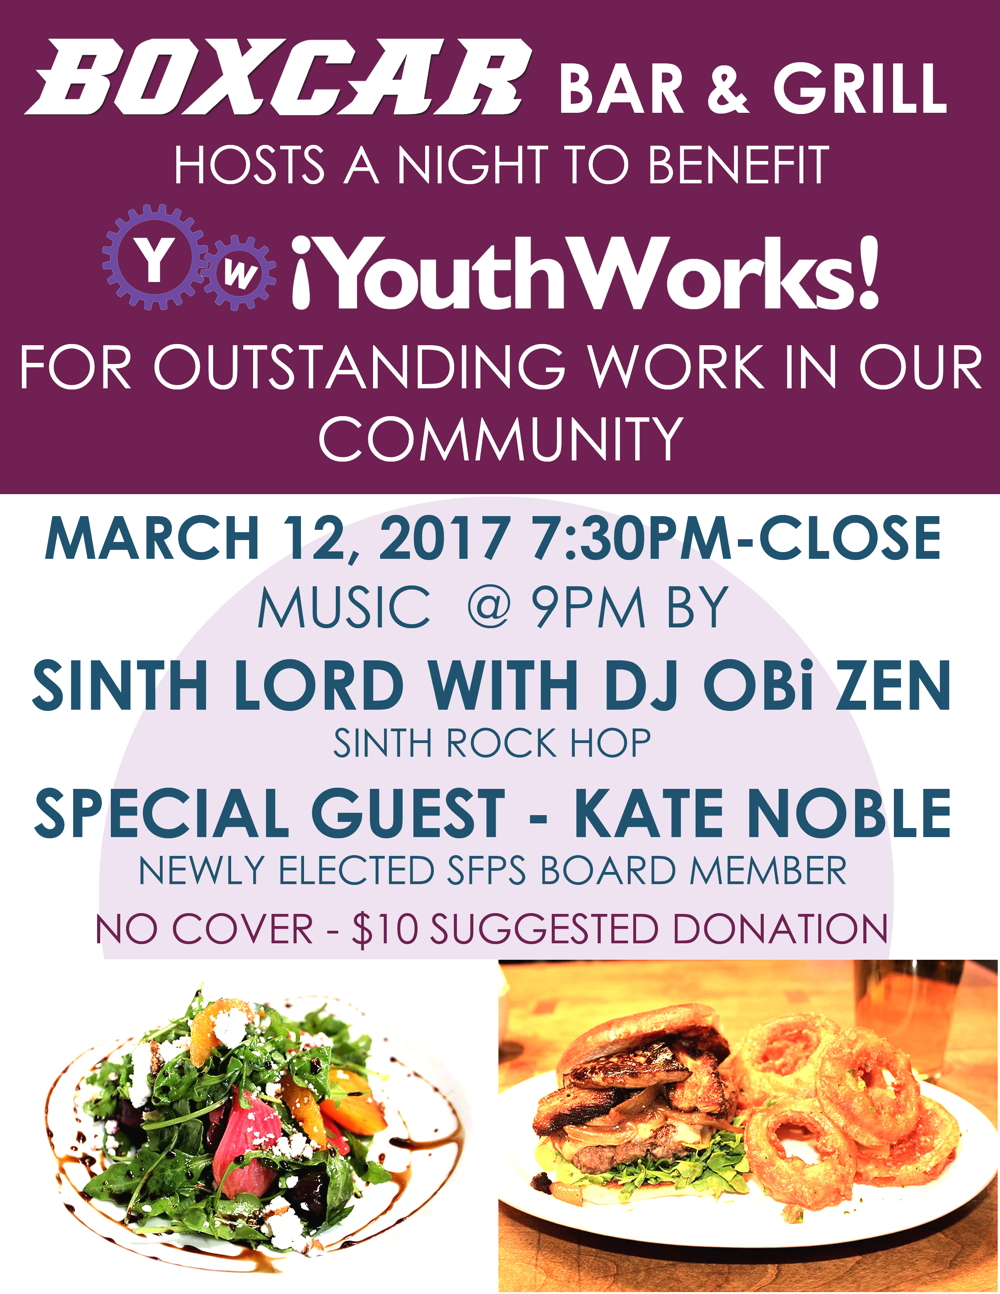 Boxcar Bar & Grill hosts a benefit for !YouthWorks! to honor their work in the Santa Fe Community.